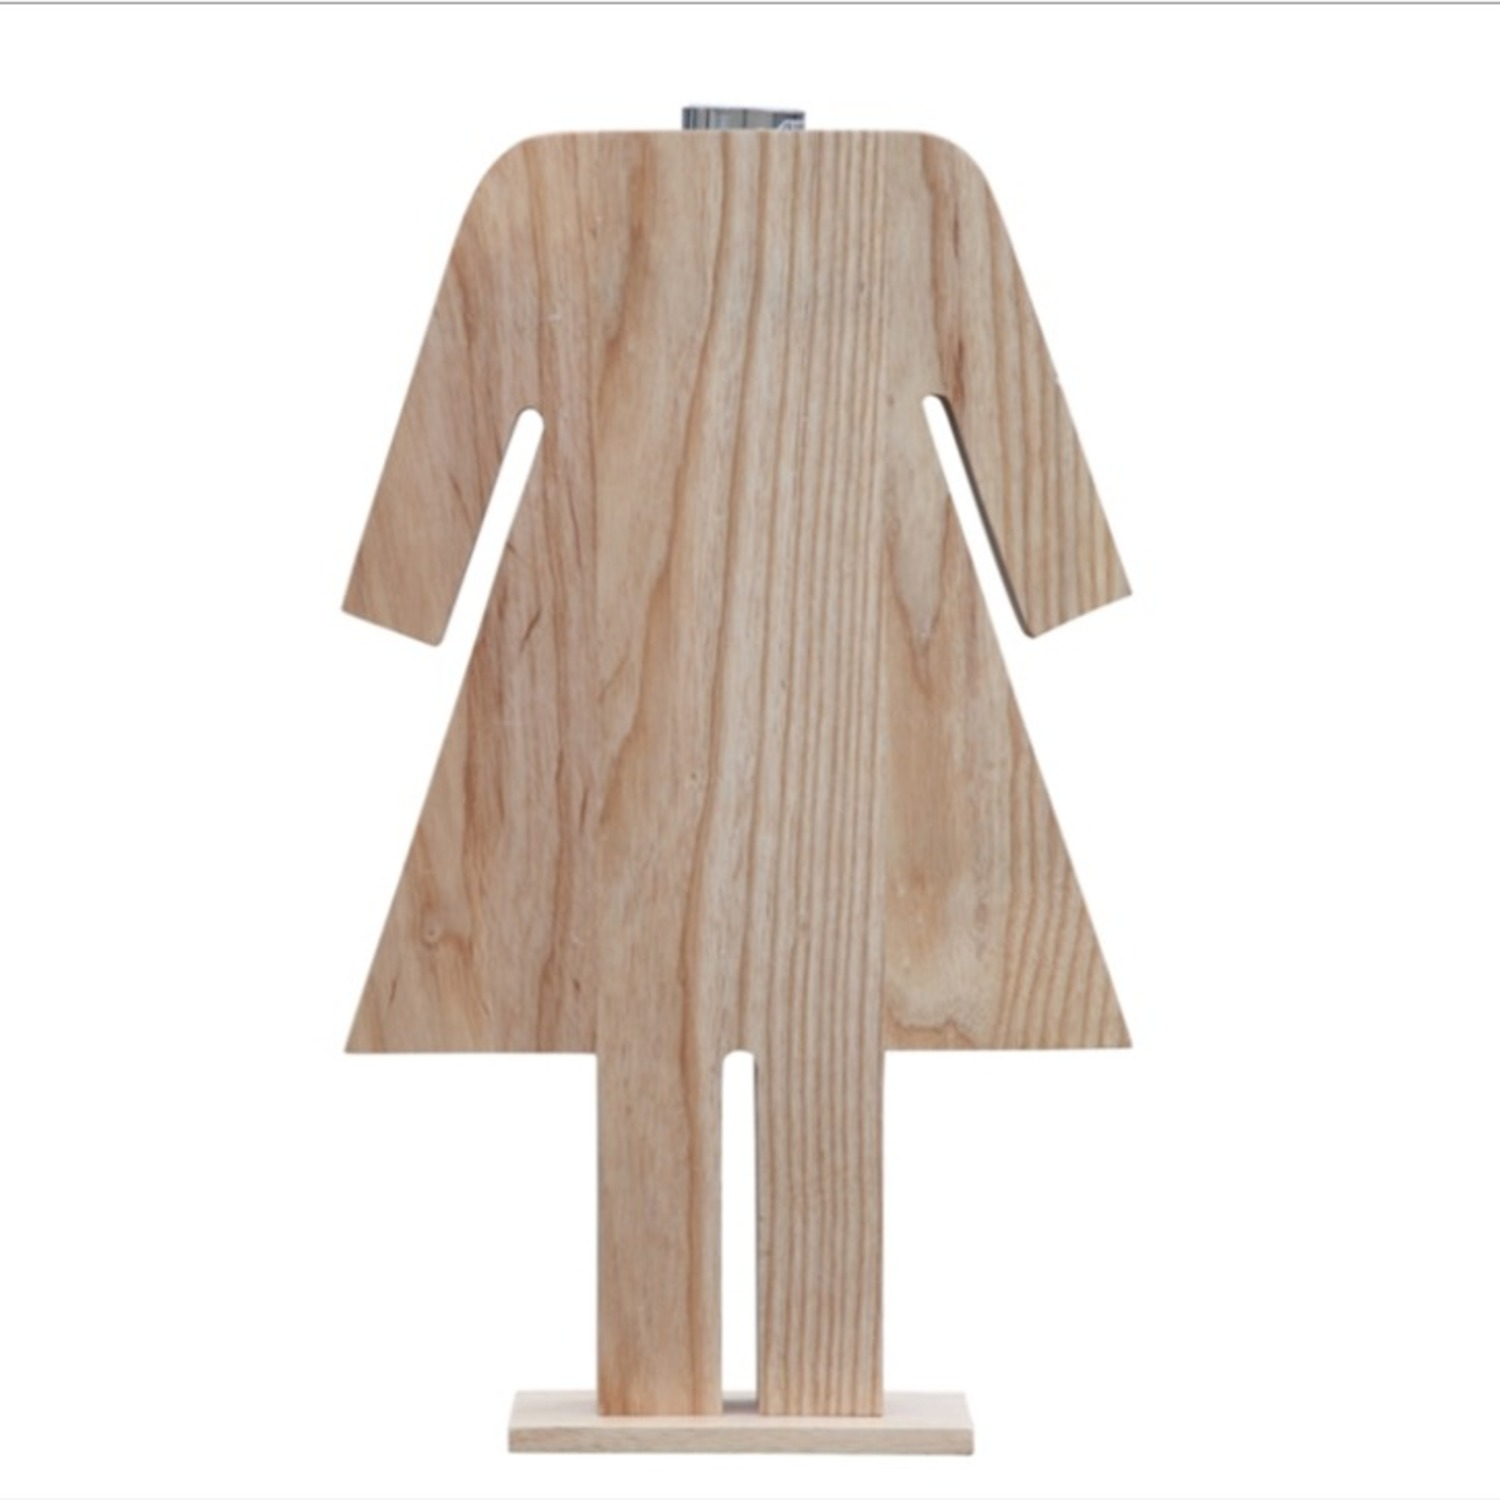 Table Lamp In Natural Wood W/ Female Person Design - image-3